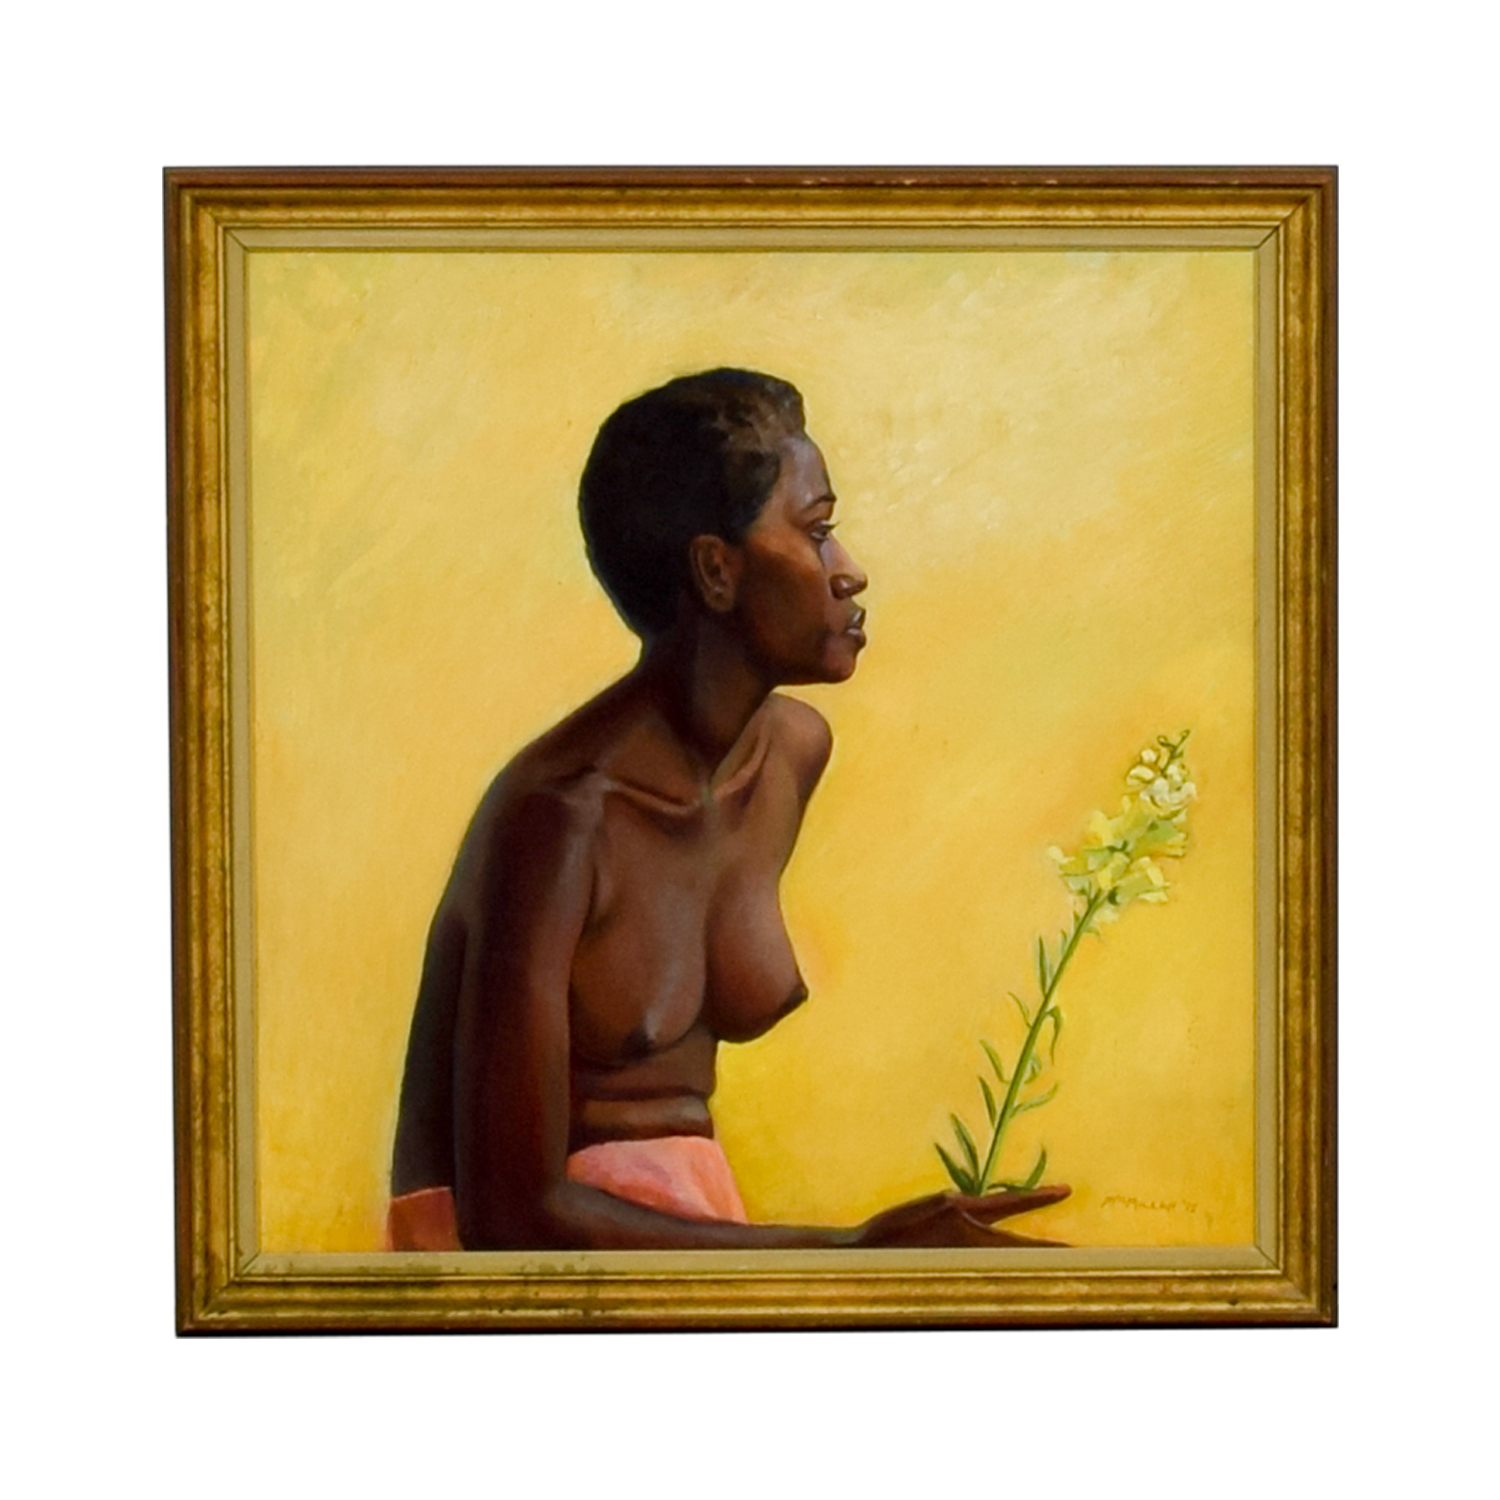 Caribbean Woman Acrylic Framed Painting on sale